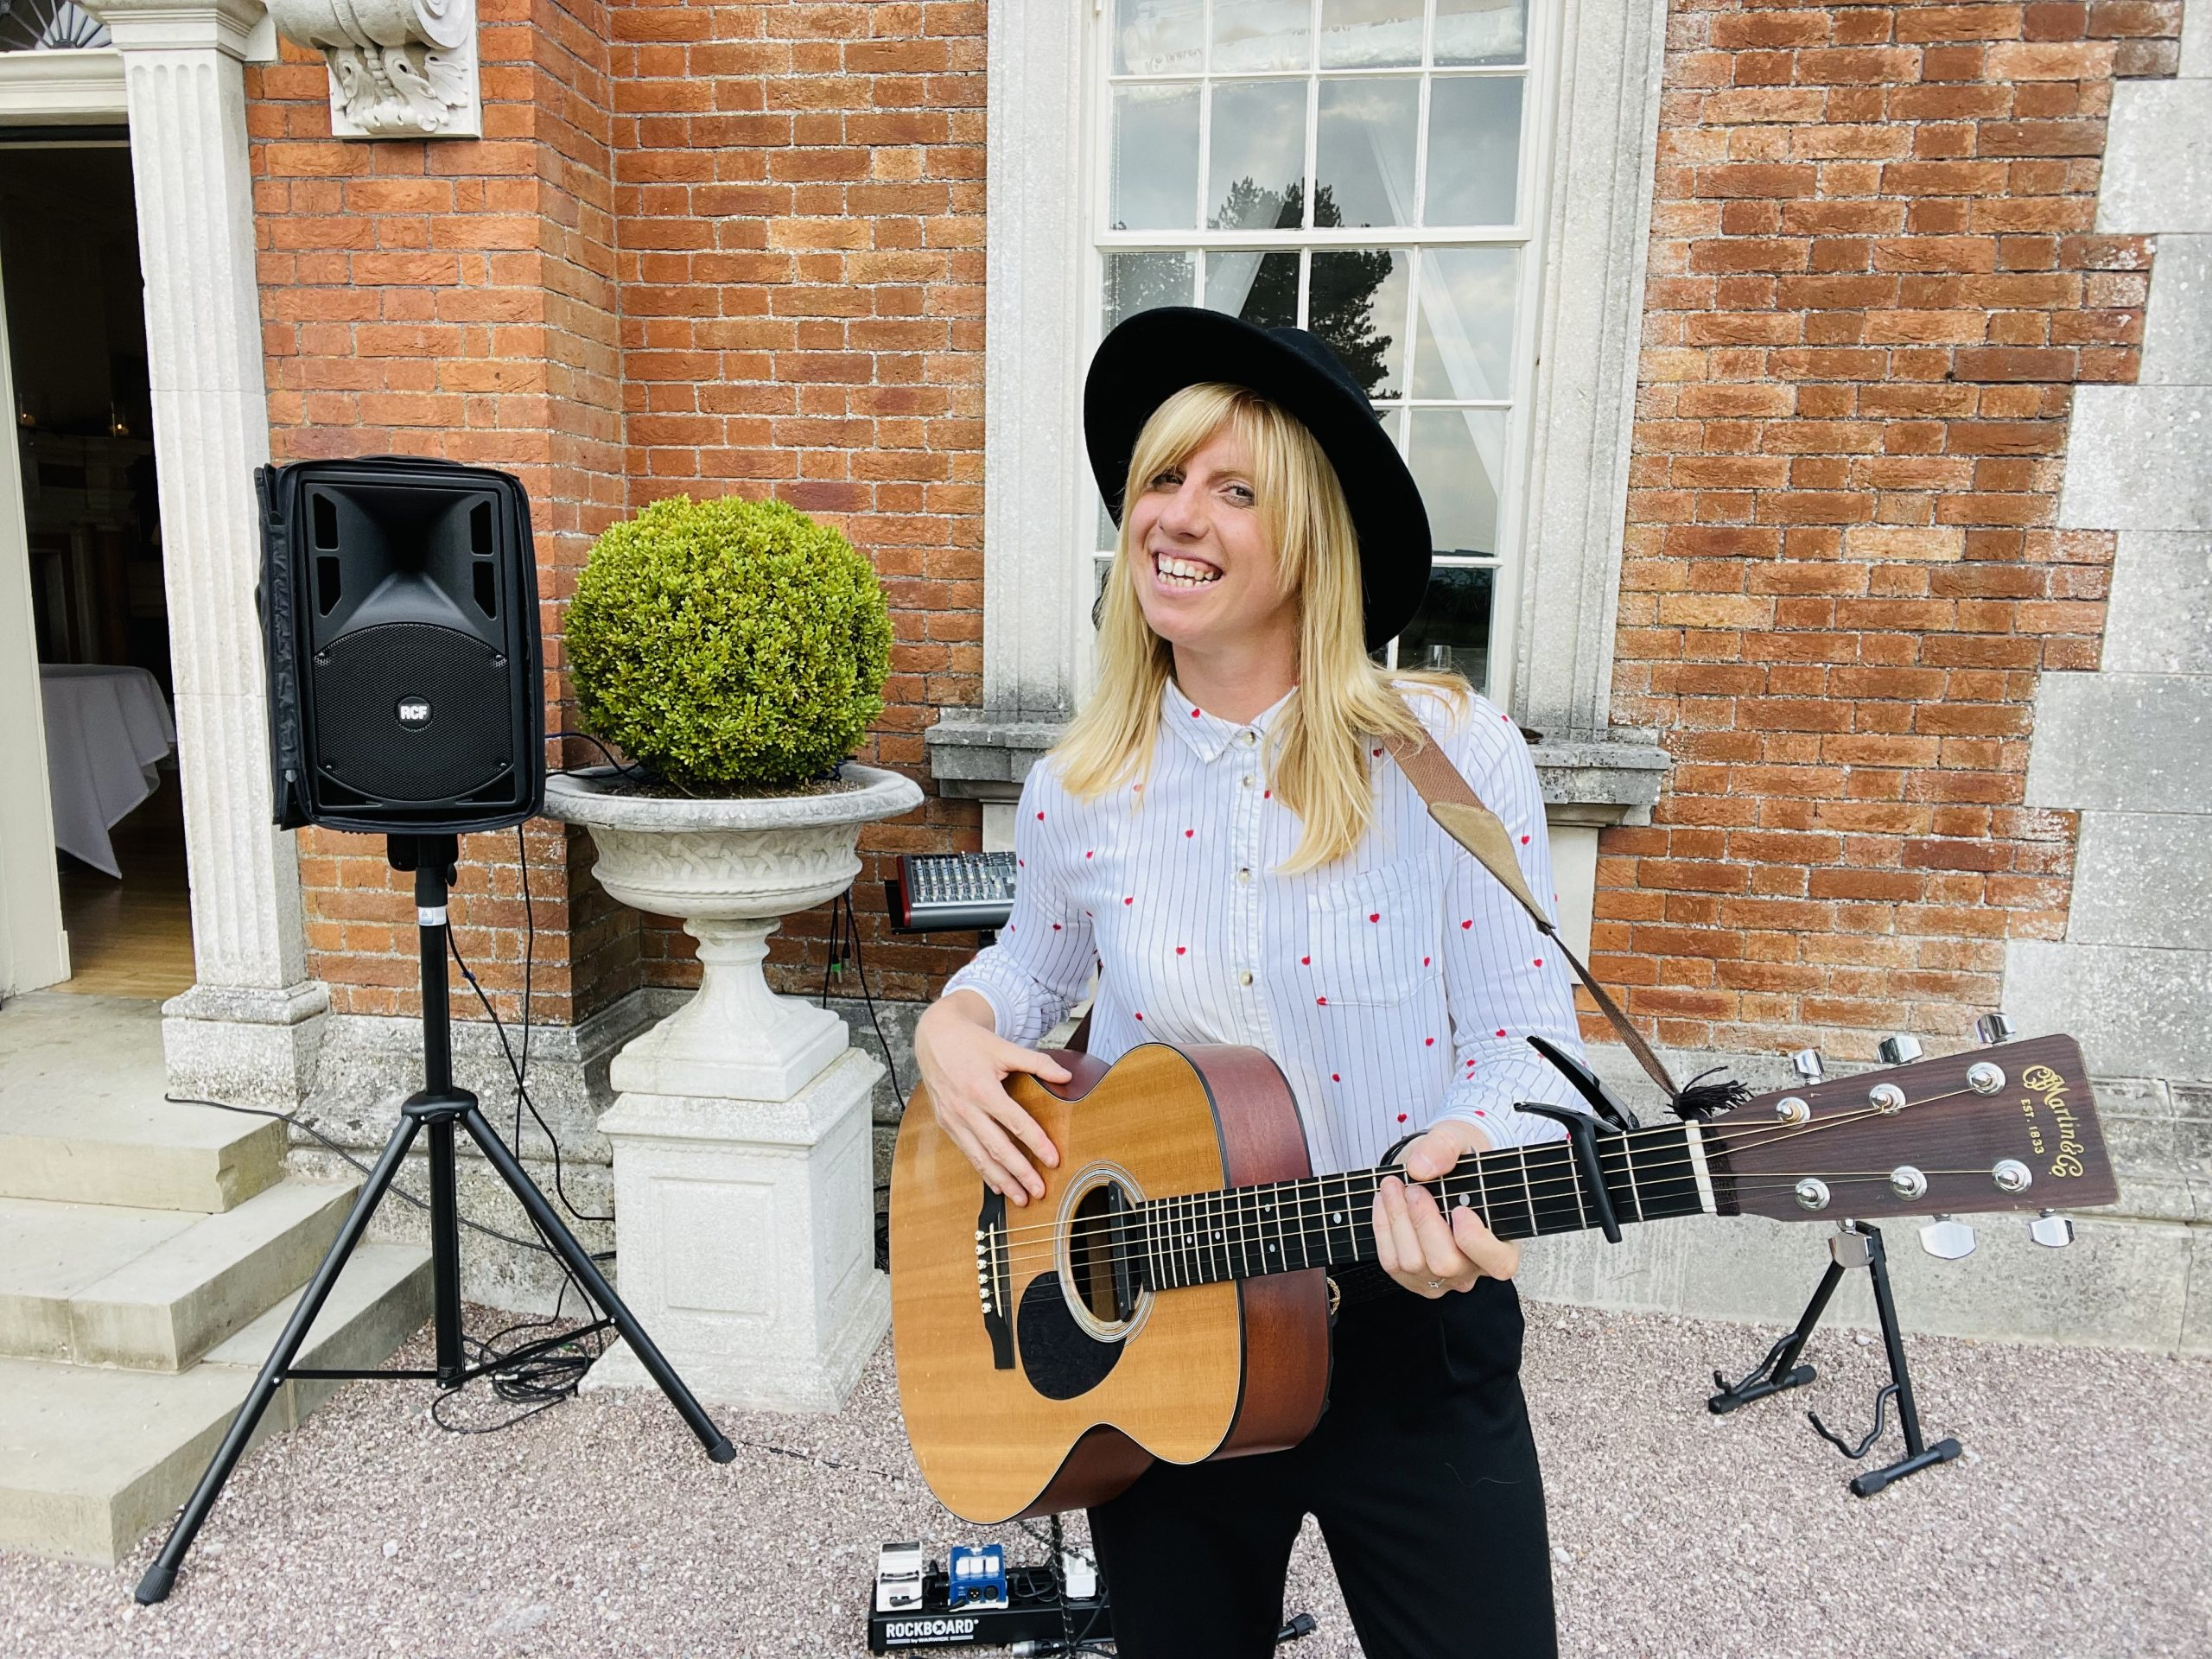 Acoustic wedding singer for hire